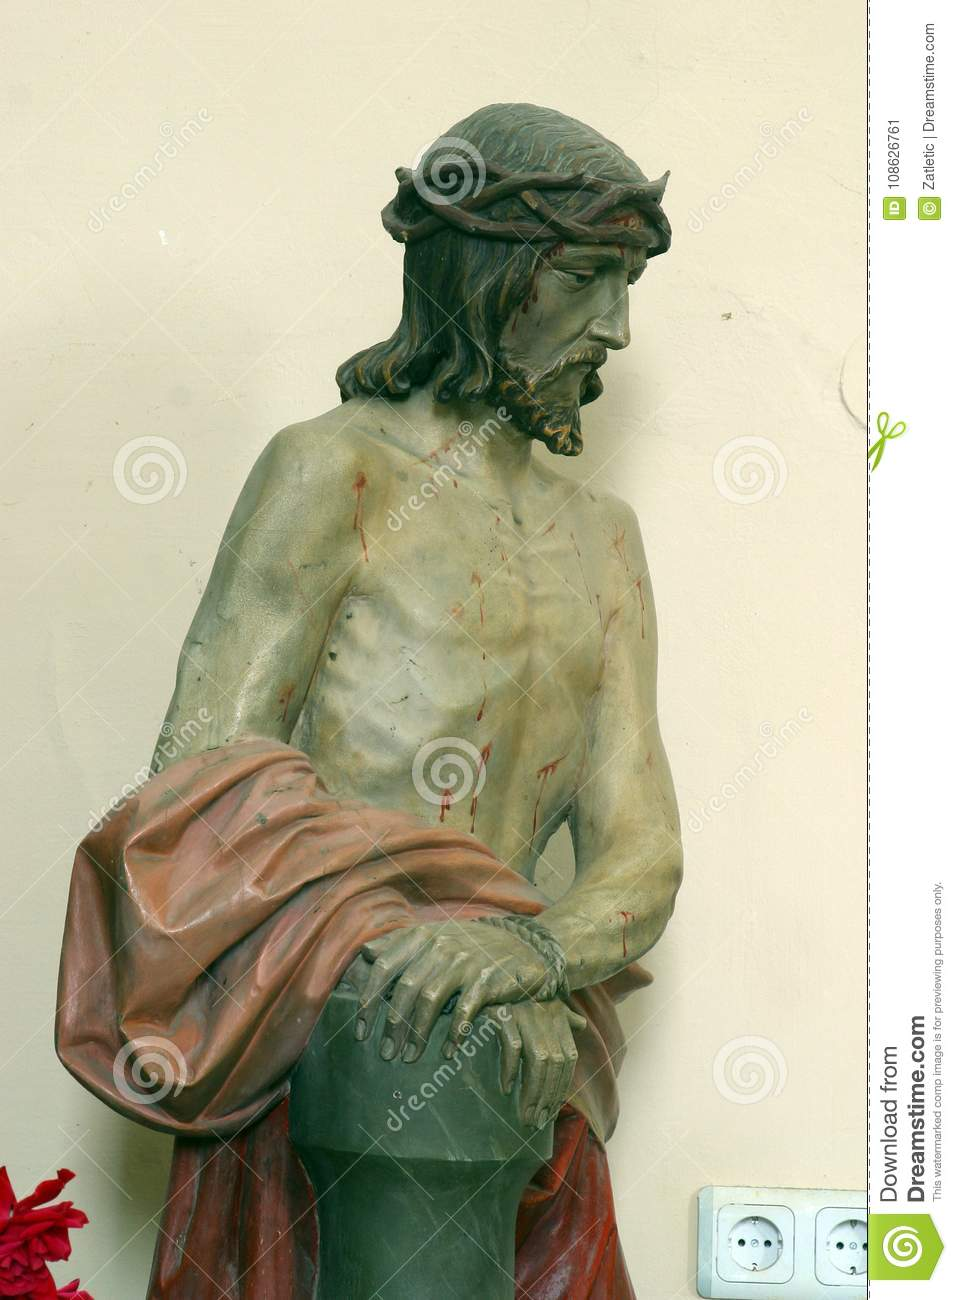 Wounded Jesus stock image. Image of catholic, color - 108626761